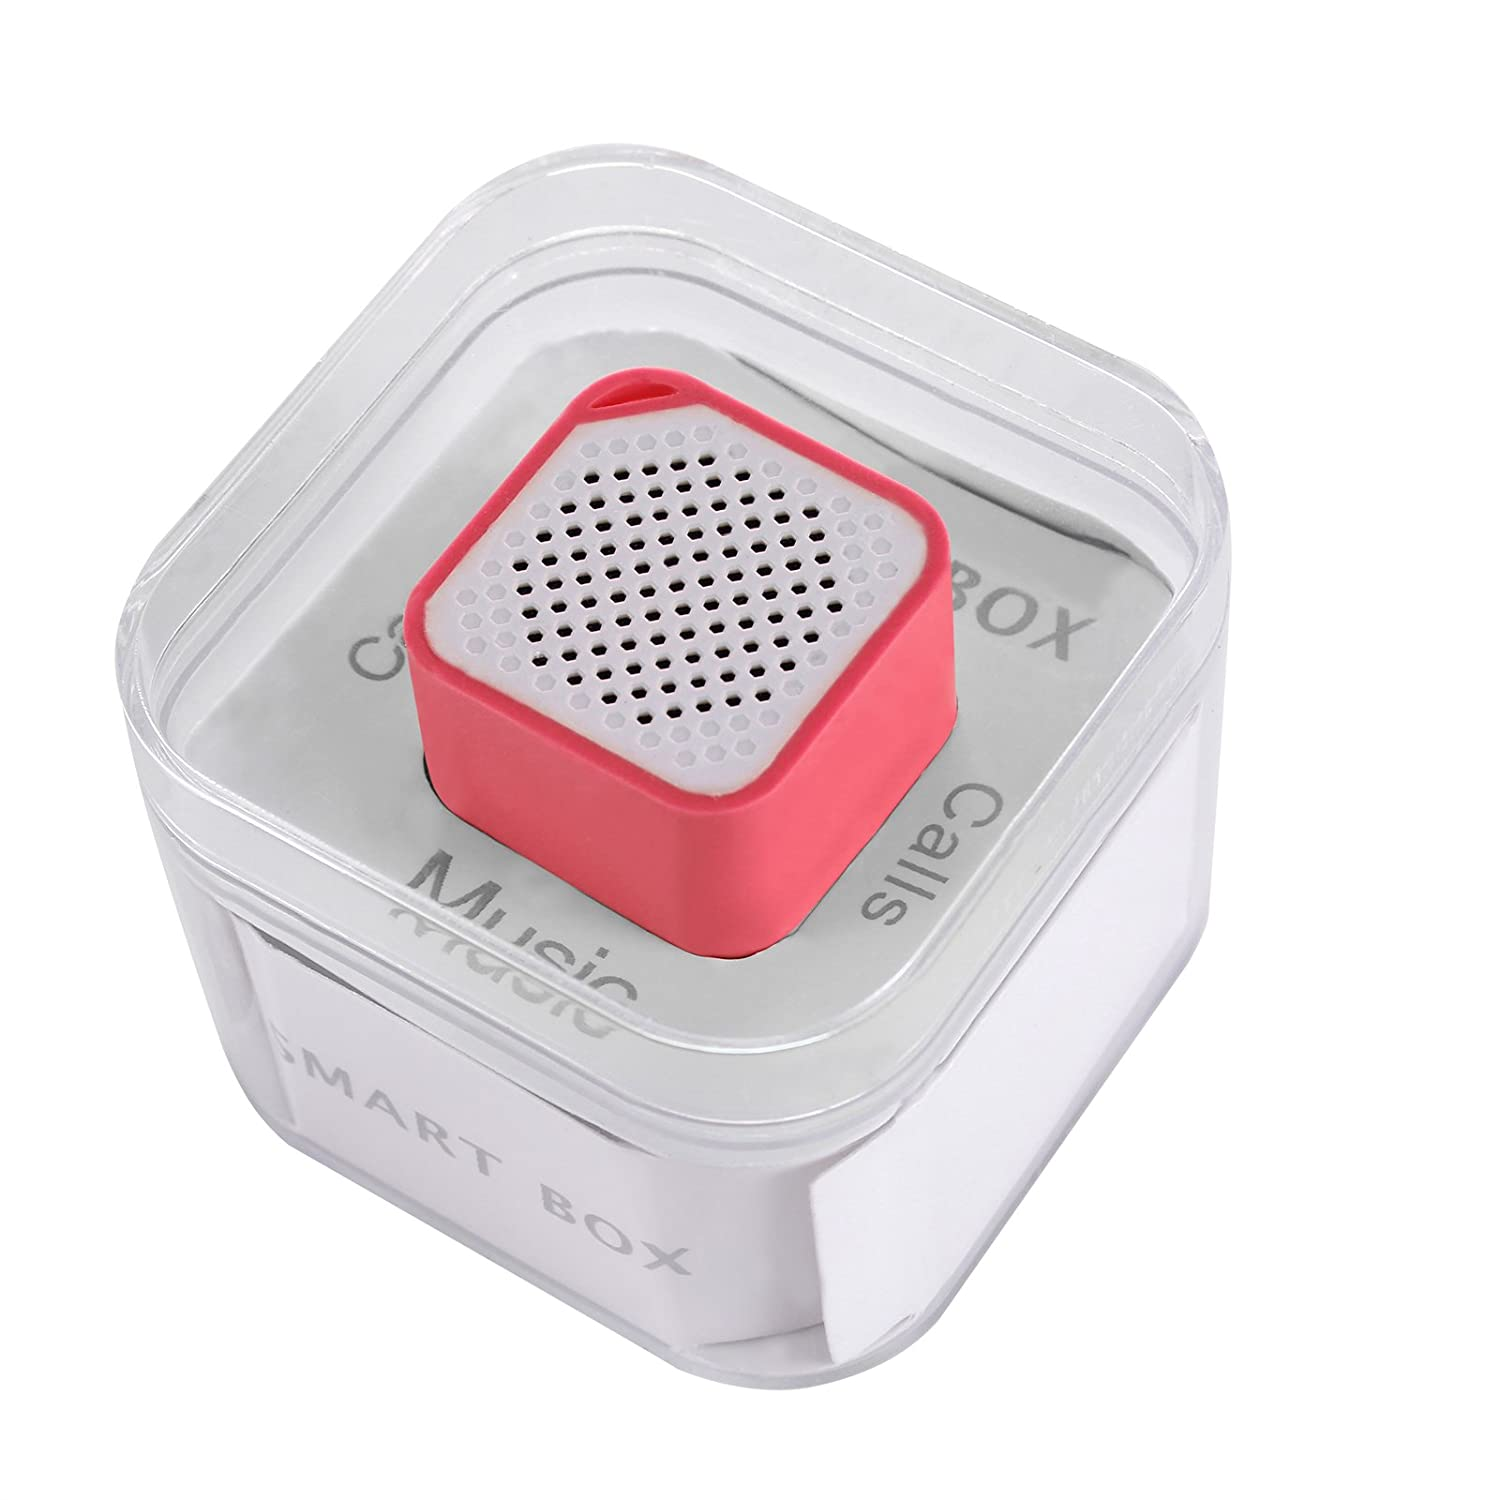 Elsse Micro Music Cube Bluetooth Speaker with Built in Microphone for iPhone, Samsung Galaxy S5 / S6, HTC One M8 / M9 and Any Bluetooth Compatible Smartphones and Music Players - Pink poweradd™ ultra portable wireless bluetooth speaker with built in microphone and rechargeable battery for iphone ipad samsung tablets laptops mp3 players and other bluetooth enable devices